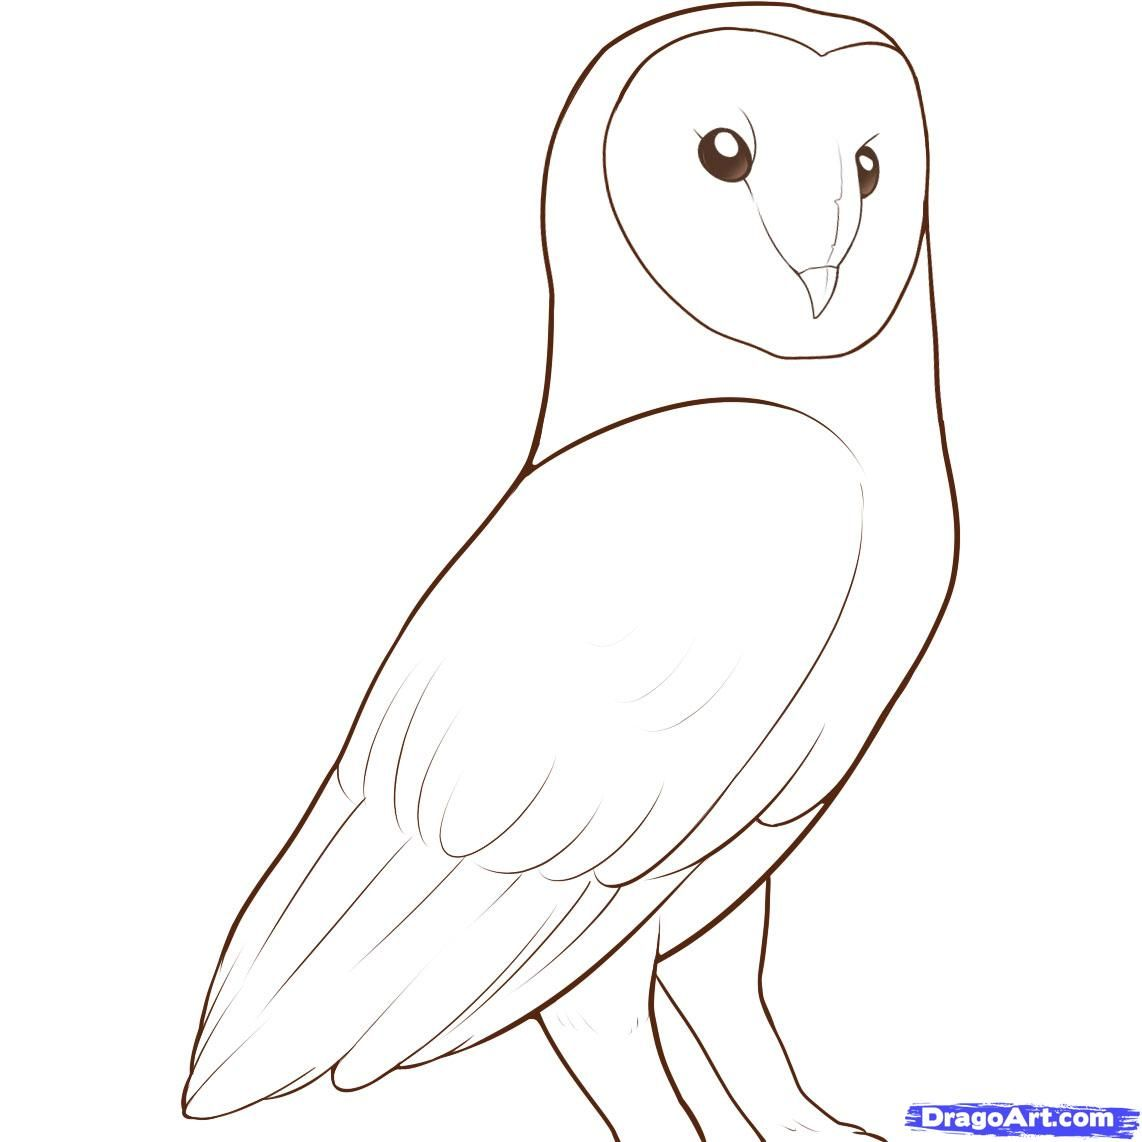 for Draw an owl in two steps